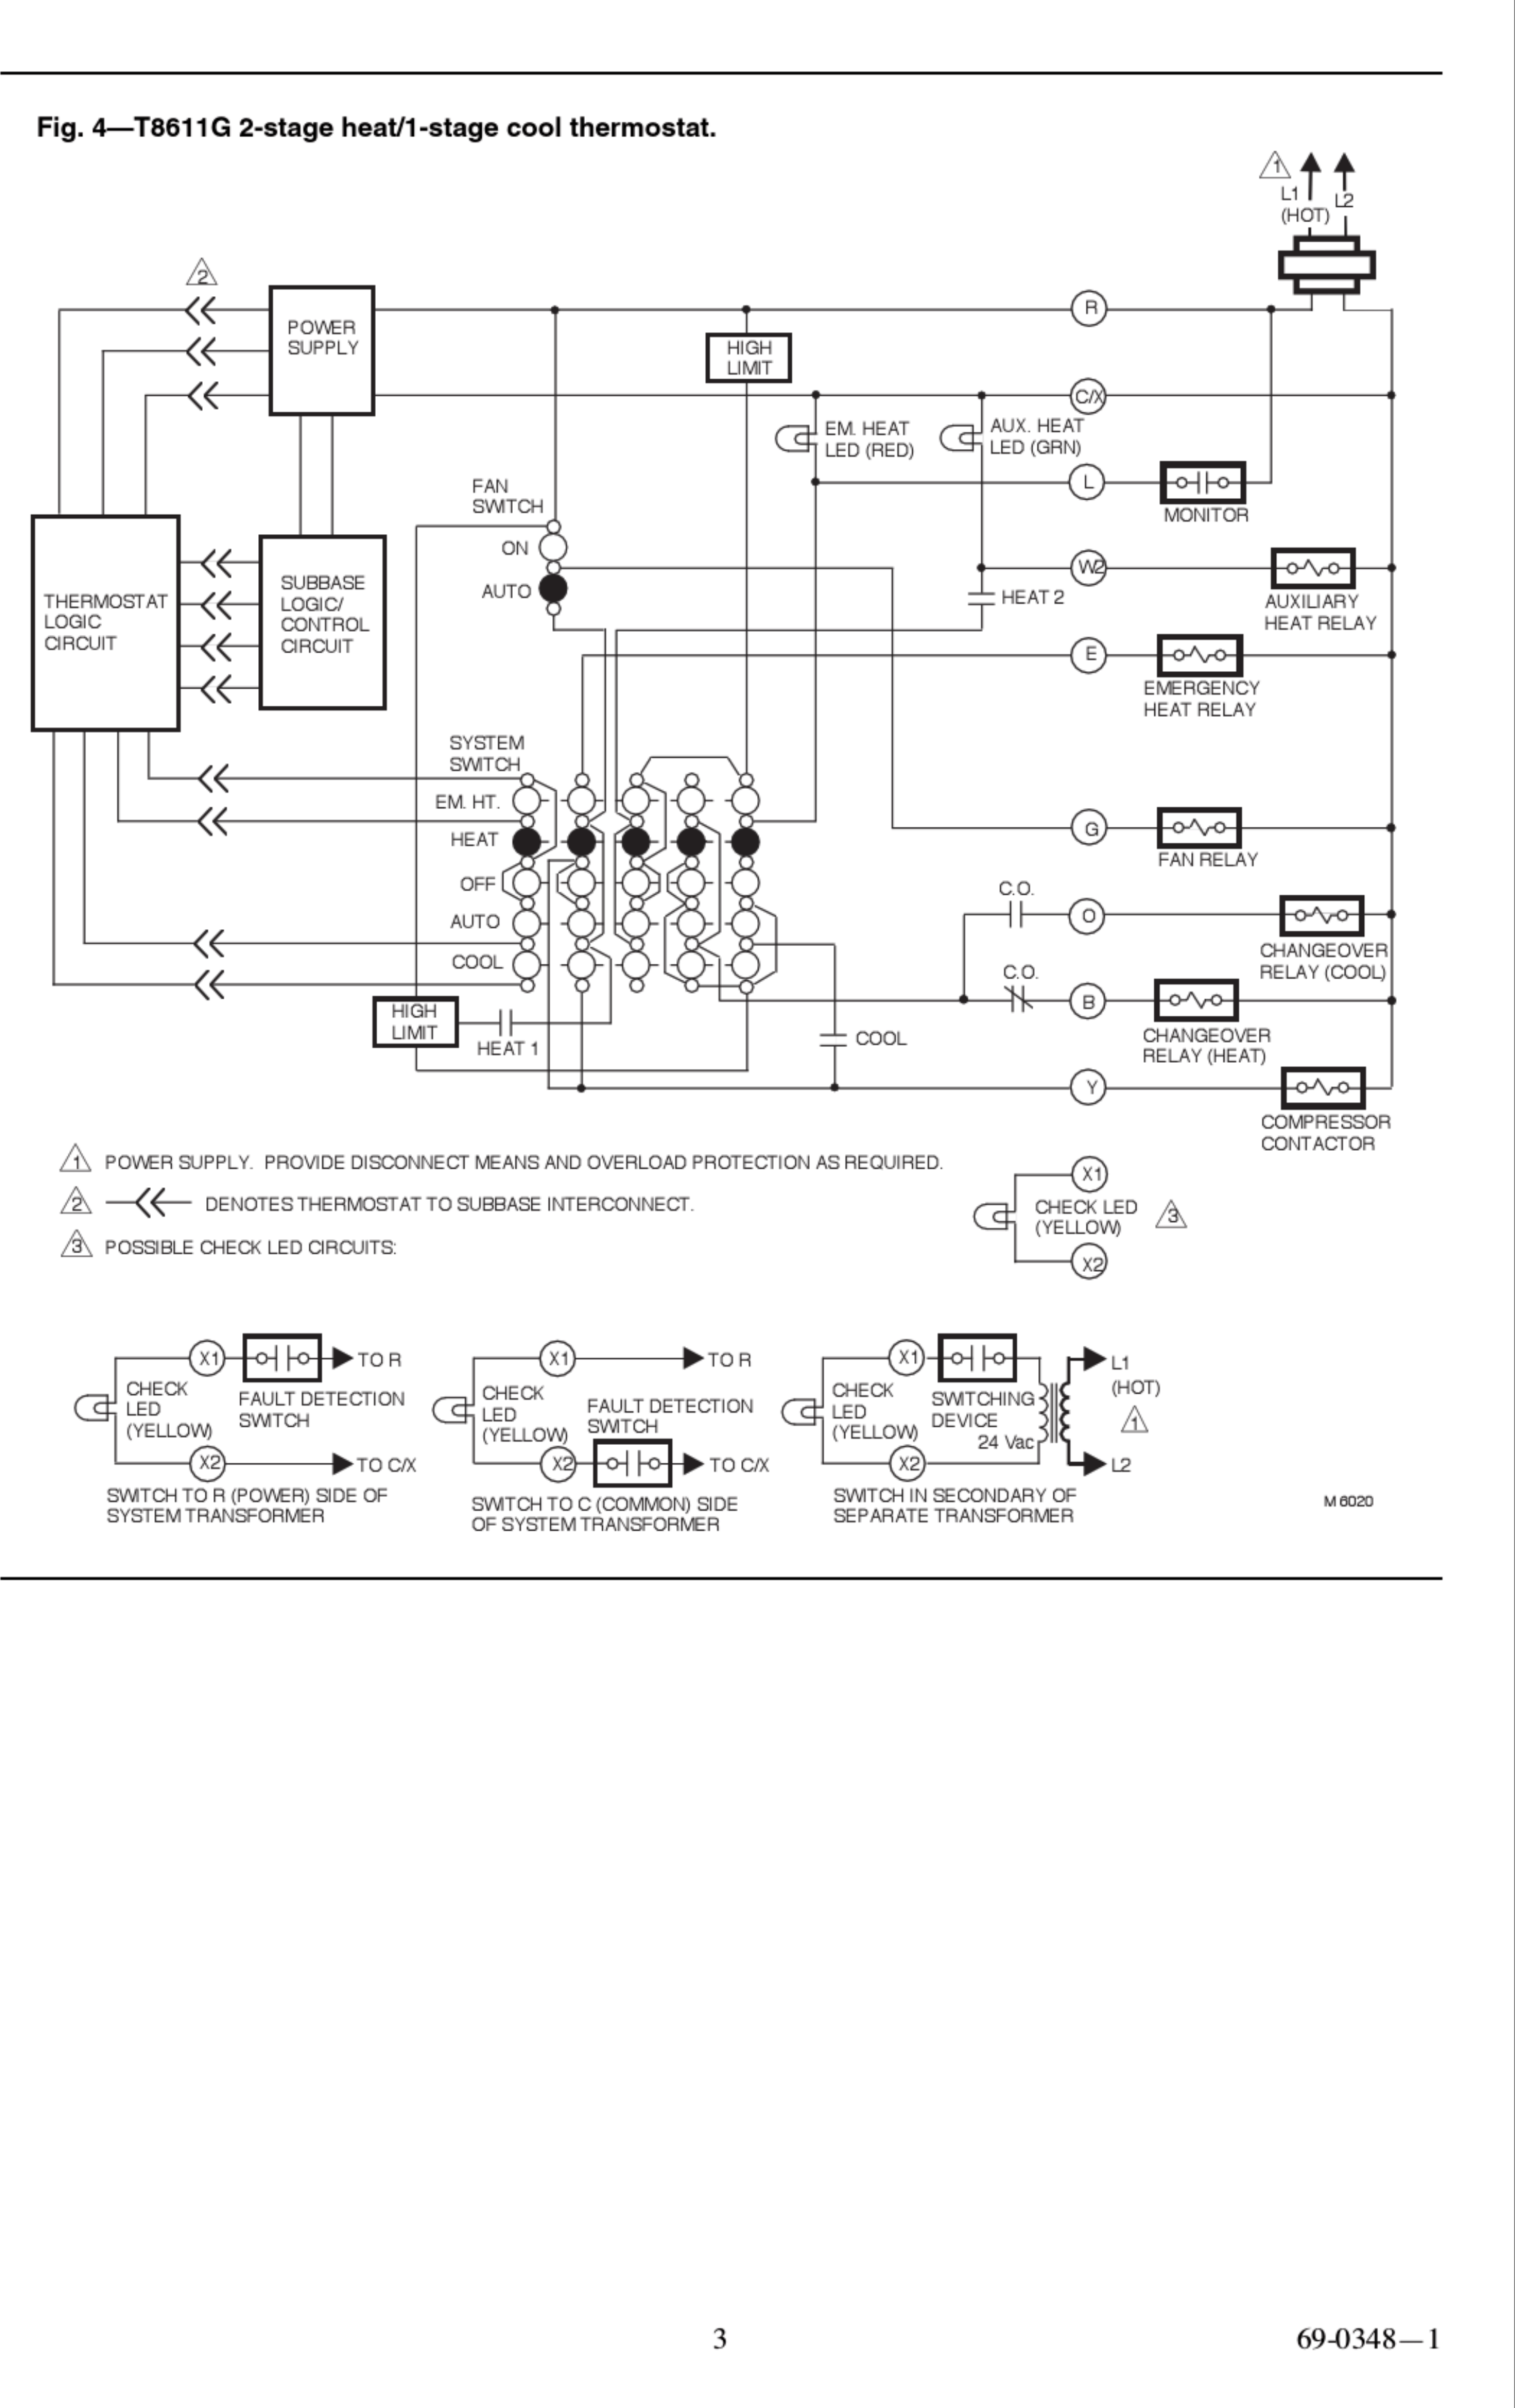 siemens vfd wiring diagram photocell installation sie drives schematics scion xb fuse box gm